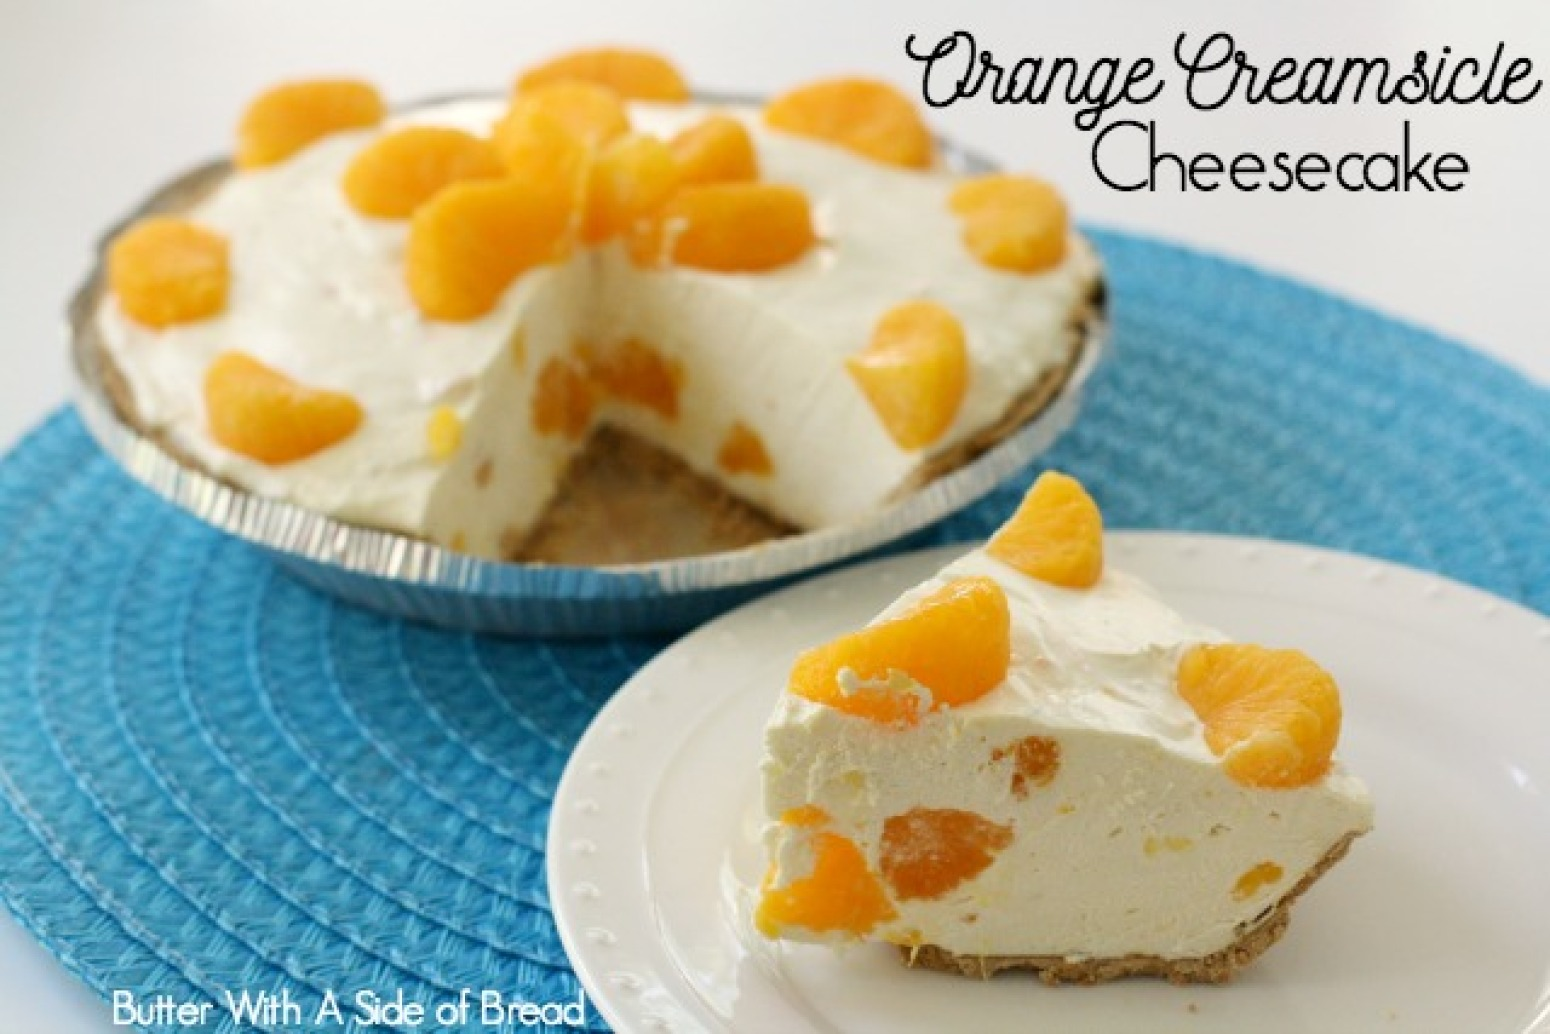 ORANGE CREAMSICLE CHEESECAKE Recipe 8 | Just A Pinch Recipes